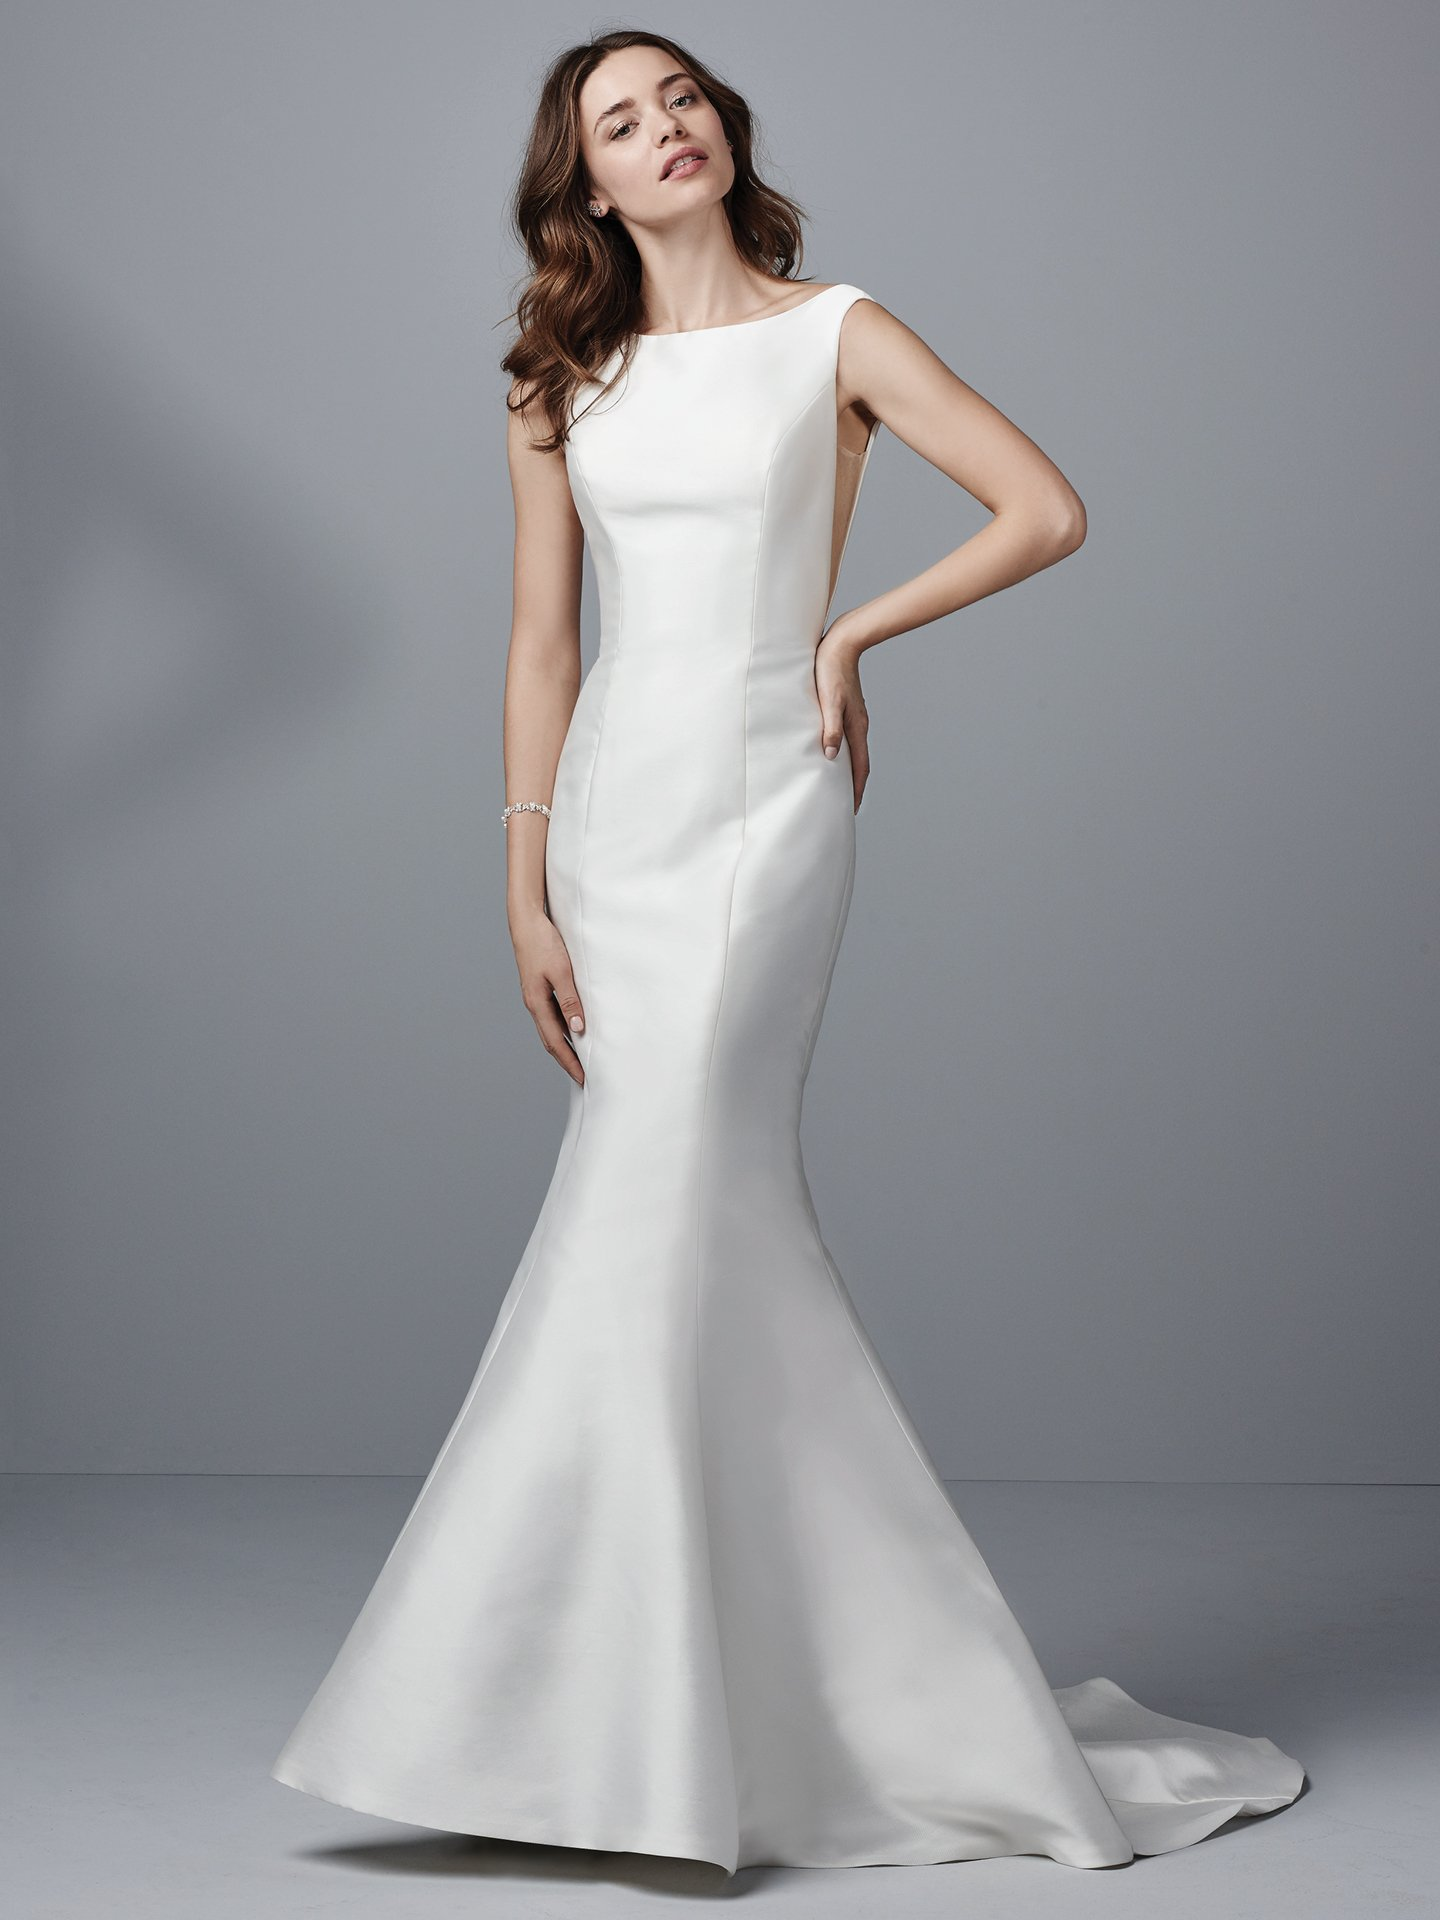 Wedding Gowns that Look Great in Photos - Cohen wedding dress by Sottero and Midgley